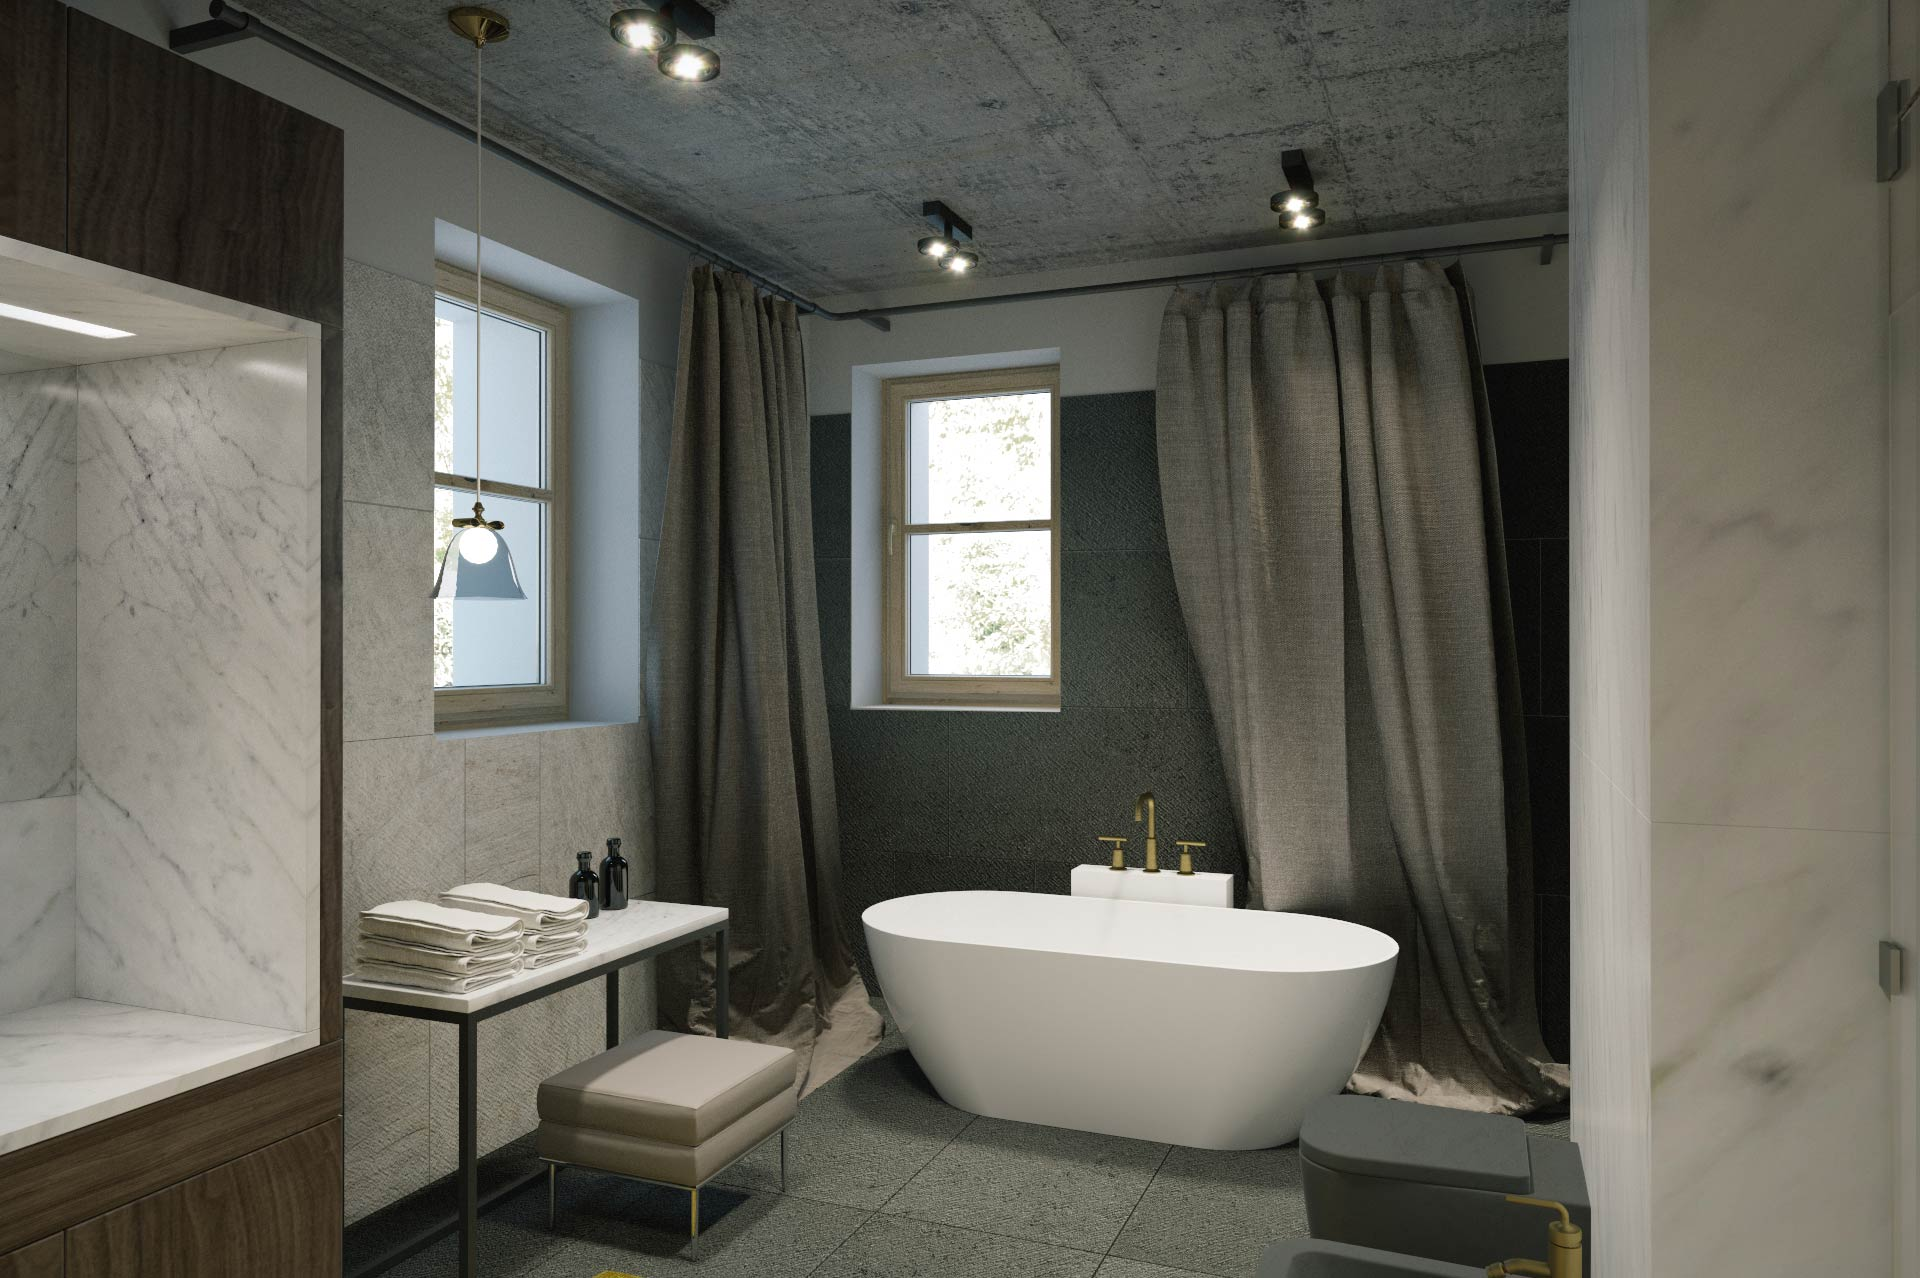 Visualization - bathroom in detached house